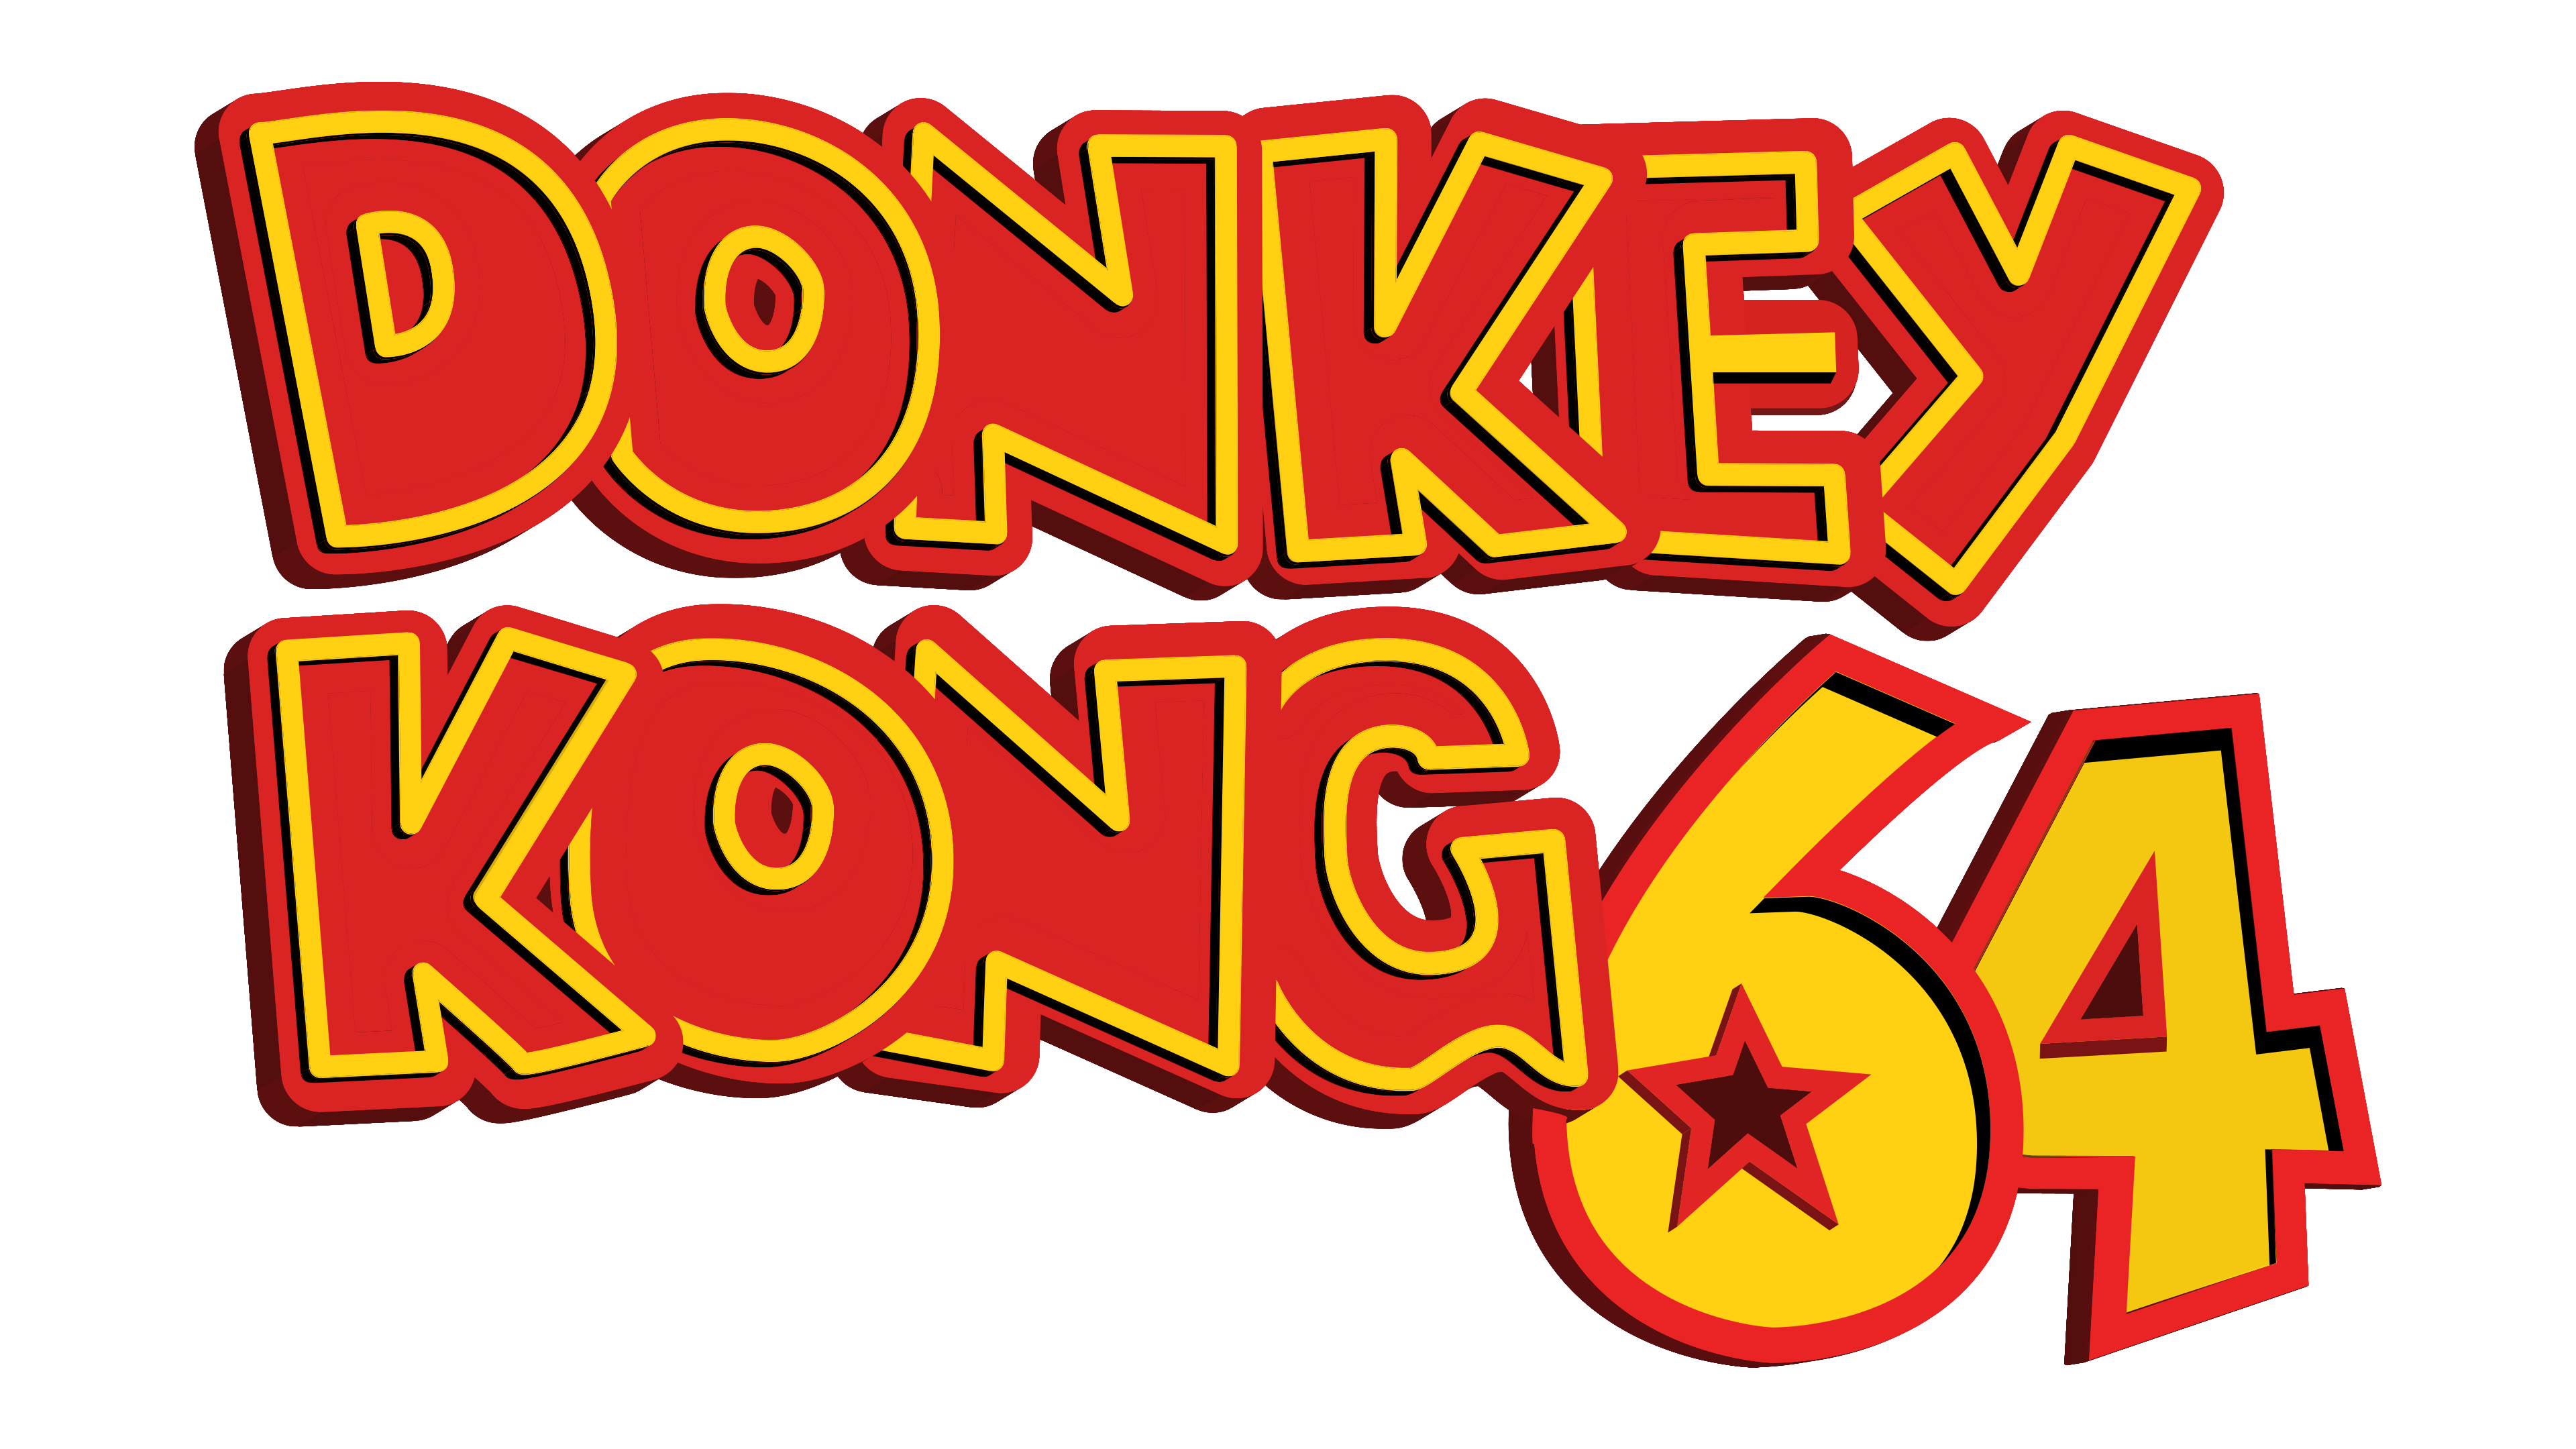 This is a photo of Amazing Donkey Kong Logo